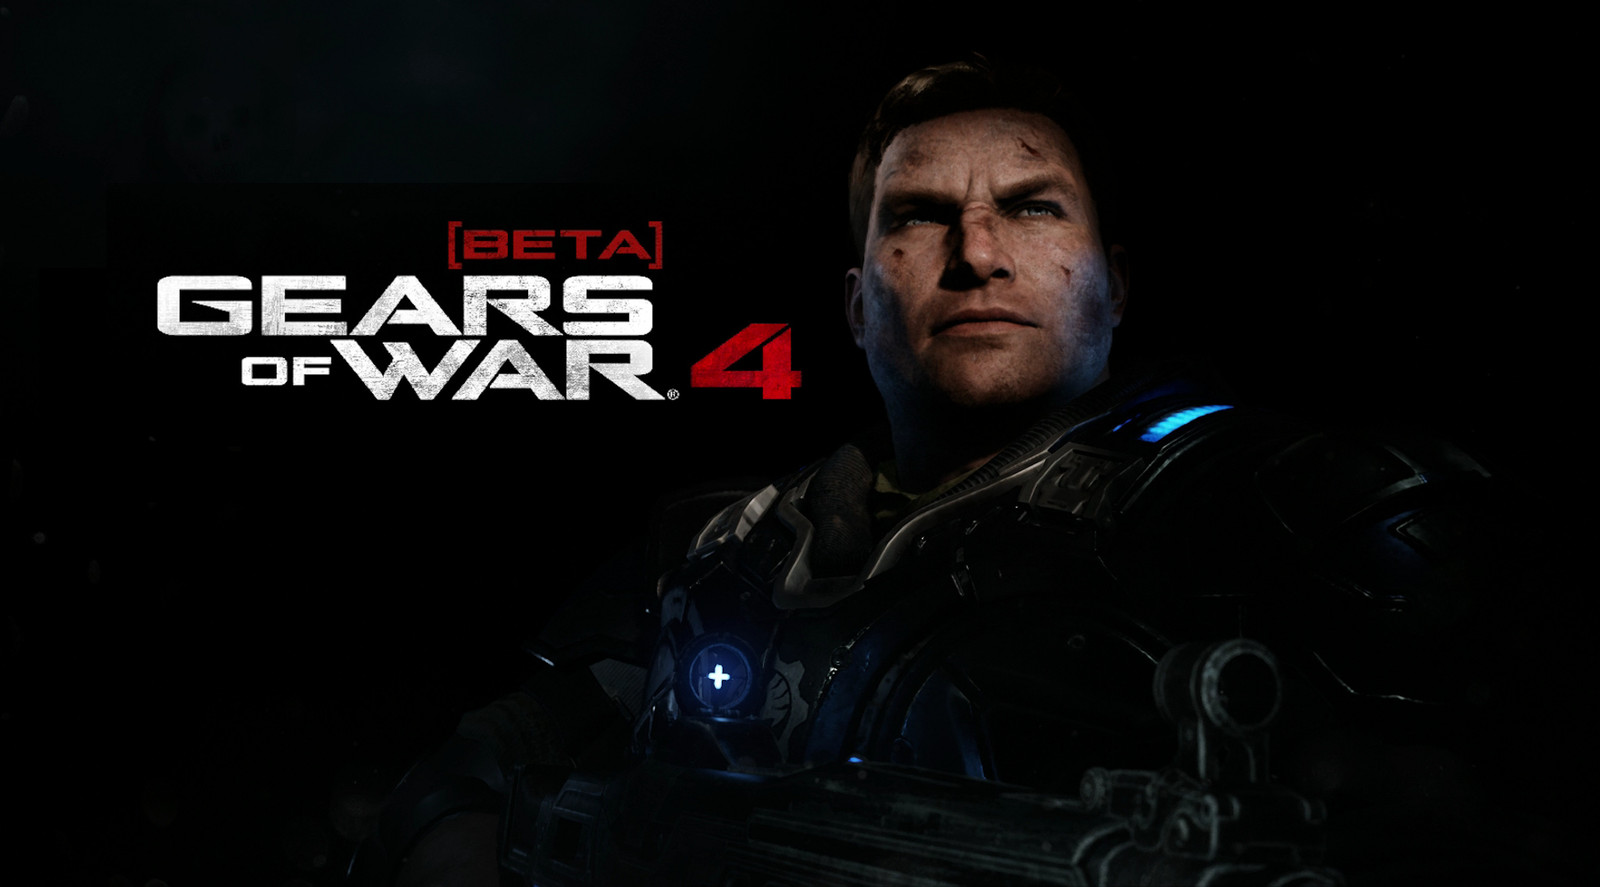 Gears-of-War-4-beta-main